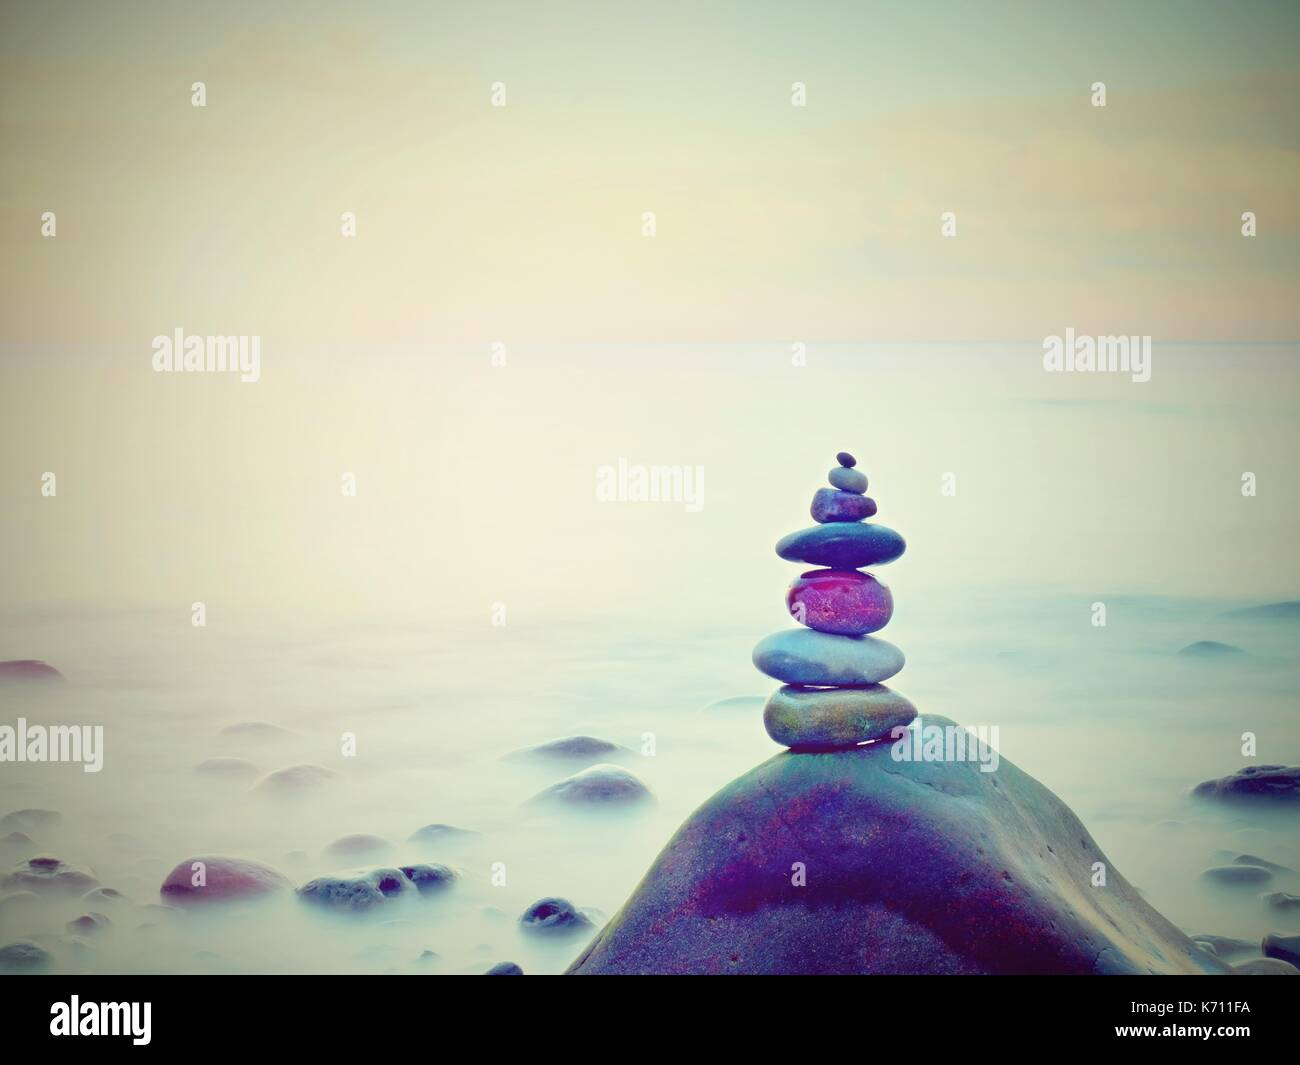 Stones pyramid on pebble beach symbolizing stability, zen, harmony, balance. Tropical sea beach. - Stock Image